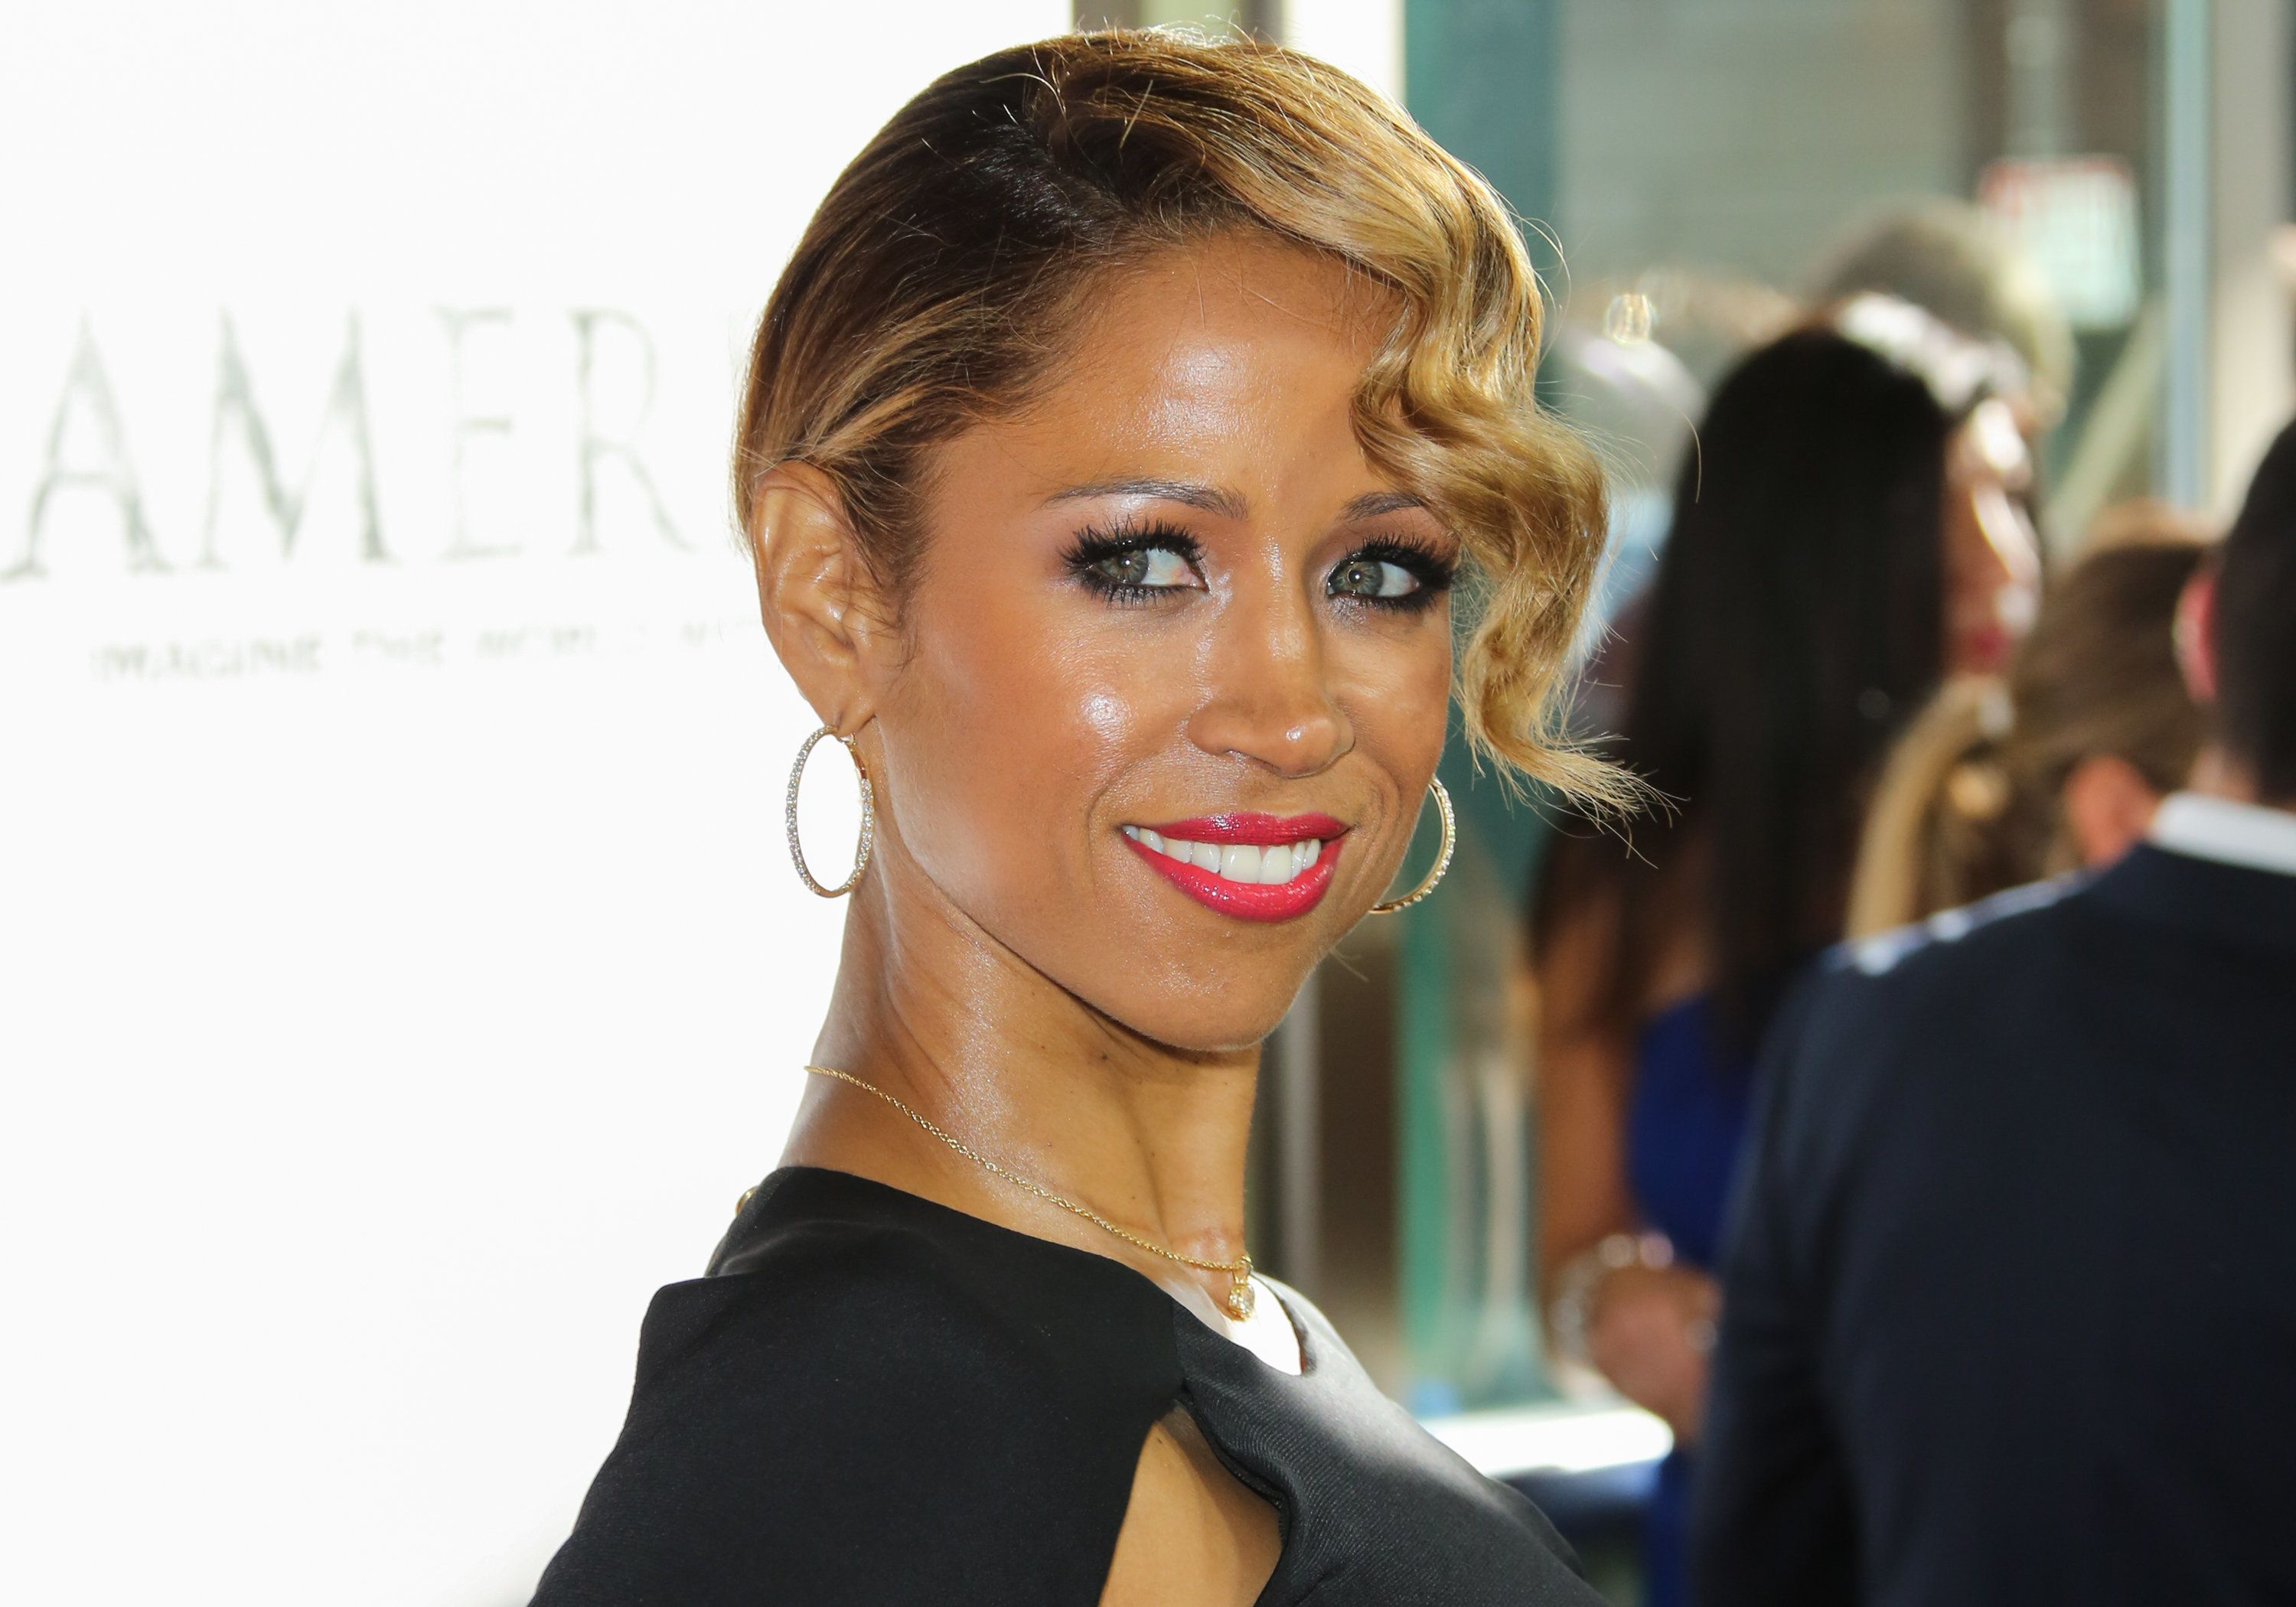 LOS ANGELES, CA - JUNE 30:  Actress Stacey Dash attends the premiere of 'America' at Regal Cinemas L.A. Live on June 30, 2014 in Los Angeles, California.  (Photo by Paul Archuleta/FilmMagic)